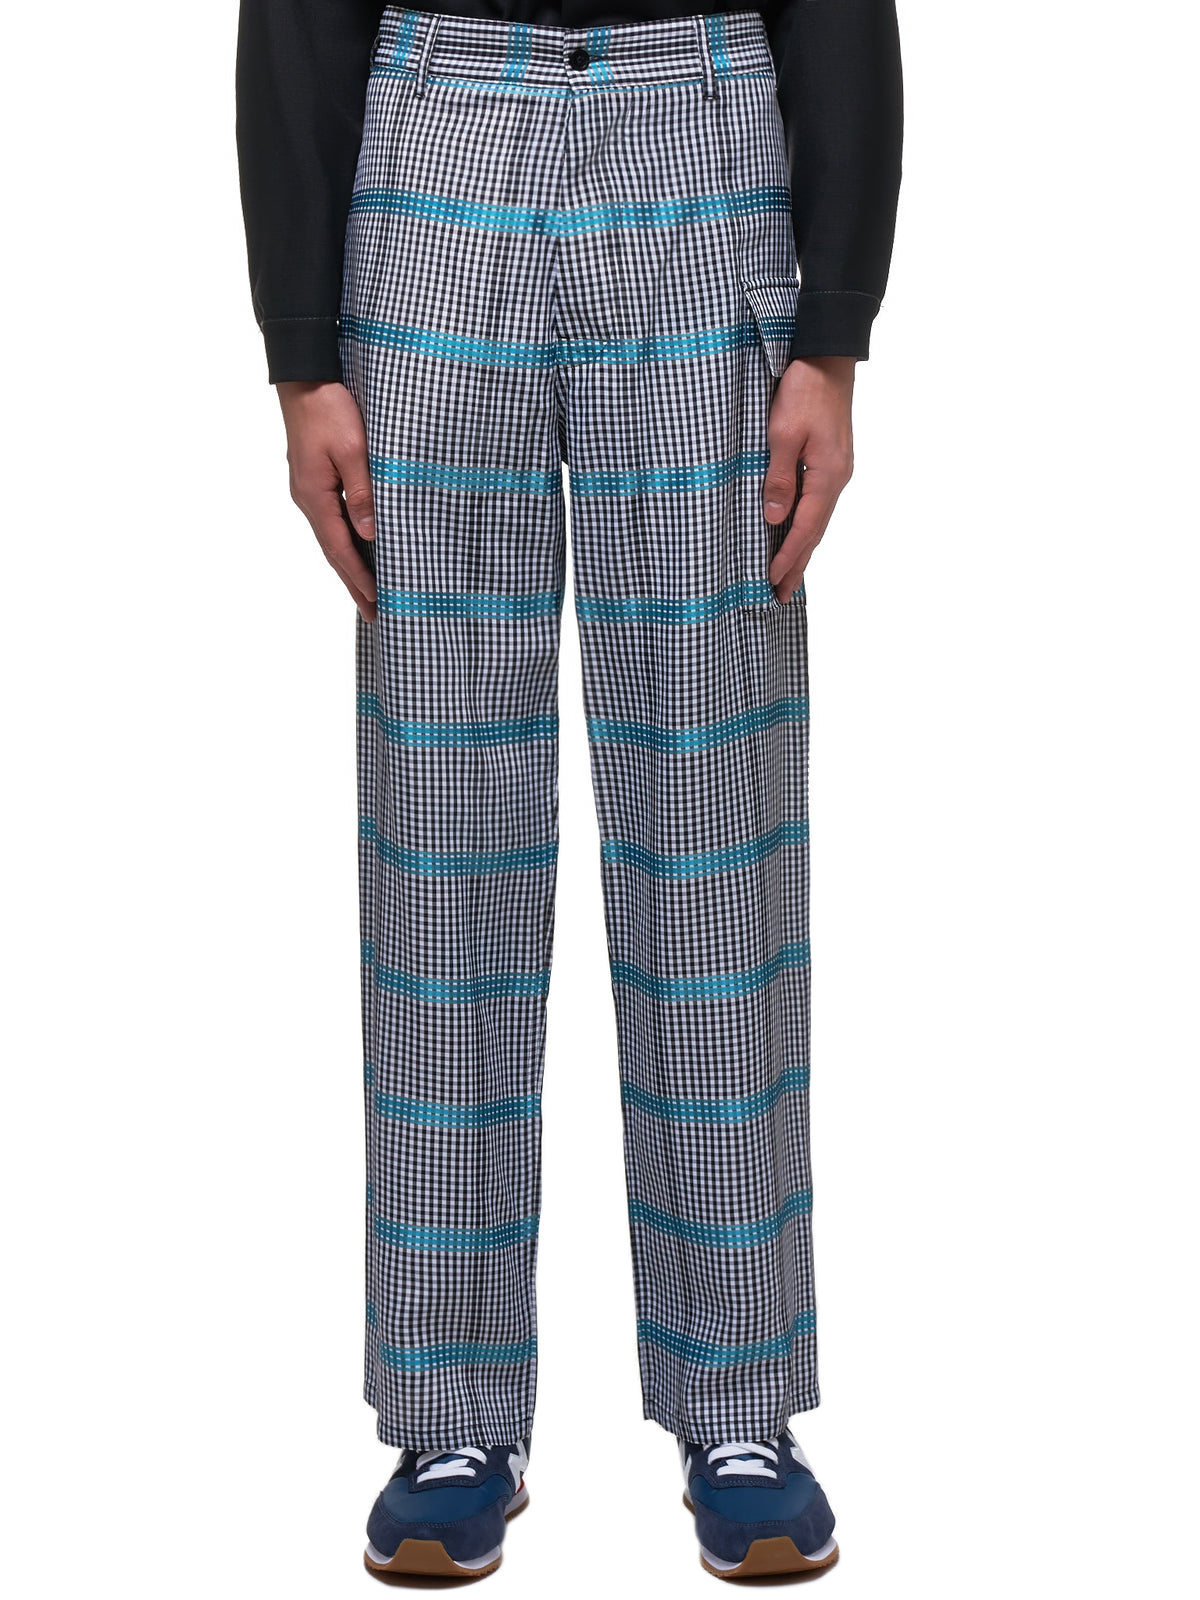 Mixed Gingham Trousers (PUMU0095A0-S52714-BLACK-TEAL)